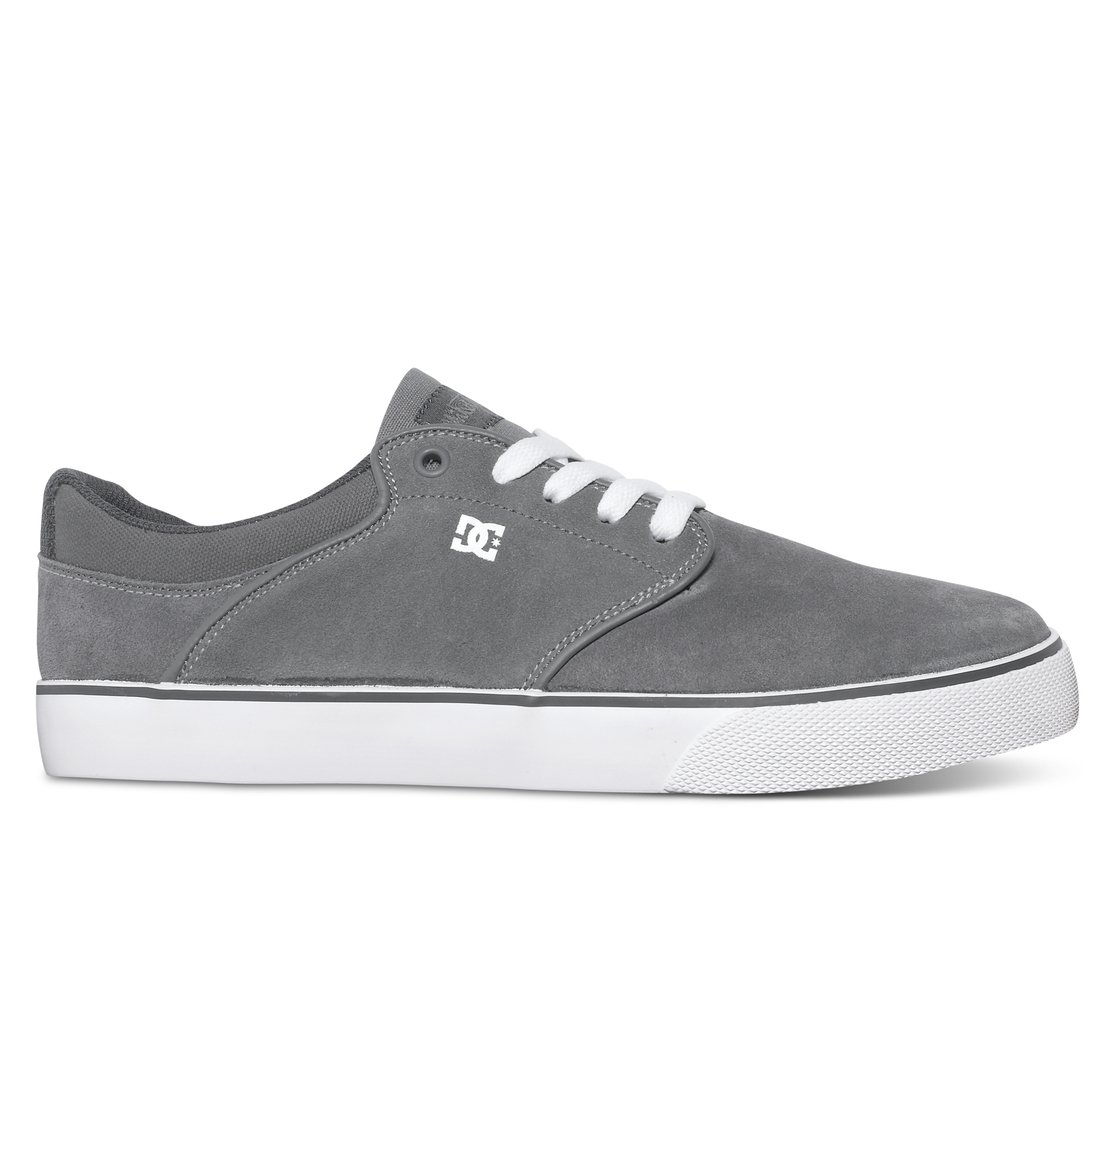 Mikey Taylor Vulc - Dcshoes������ ������� ���� Mikey Taylor Vulc �� DC Shoes. <br>��������������: ������ ����� ������� � ����������������� ������������, ���� �� ����� � ��������, ������ � ������������ �������, ������������ � ����� ������� �������. <br>������: ����: ���� / ���������: �������� / �������: ������.<br>